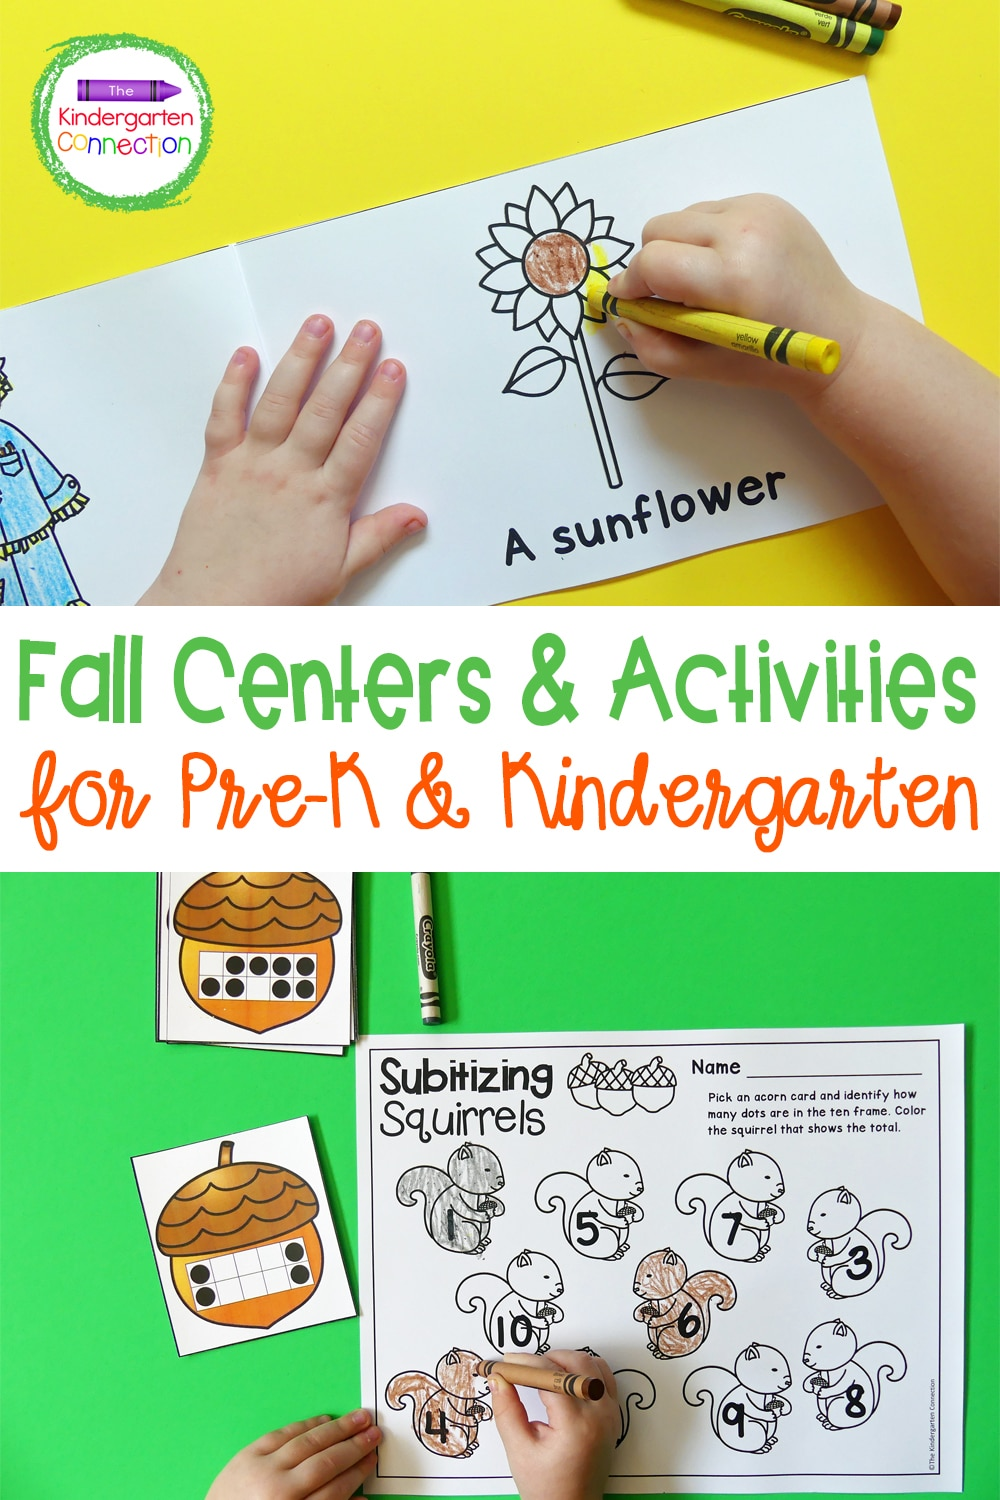 These Fall Themed Activities and Centers for Pre-K & Kindergarten are a fun way to work on letters, sight words, numbers, counting, and more!